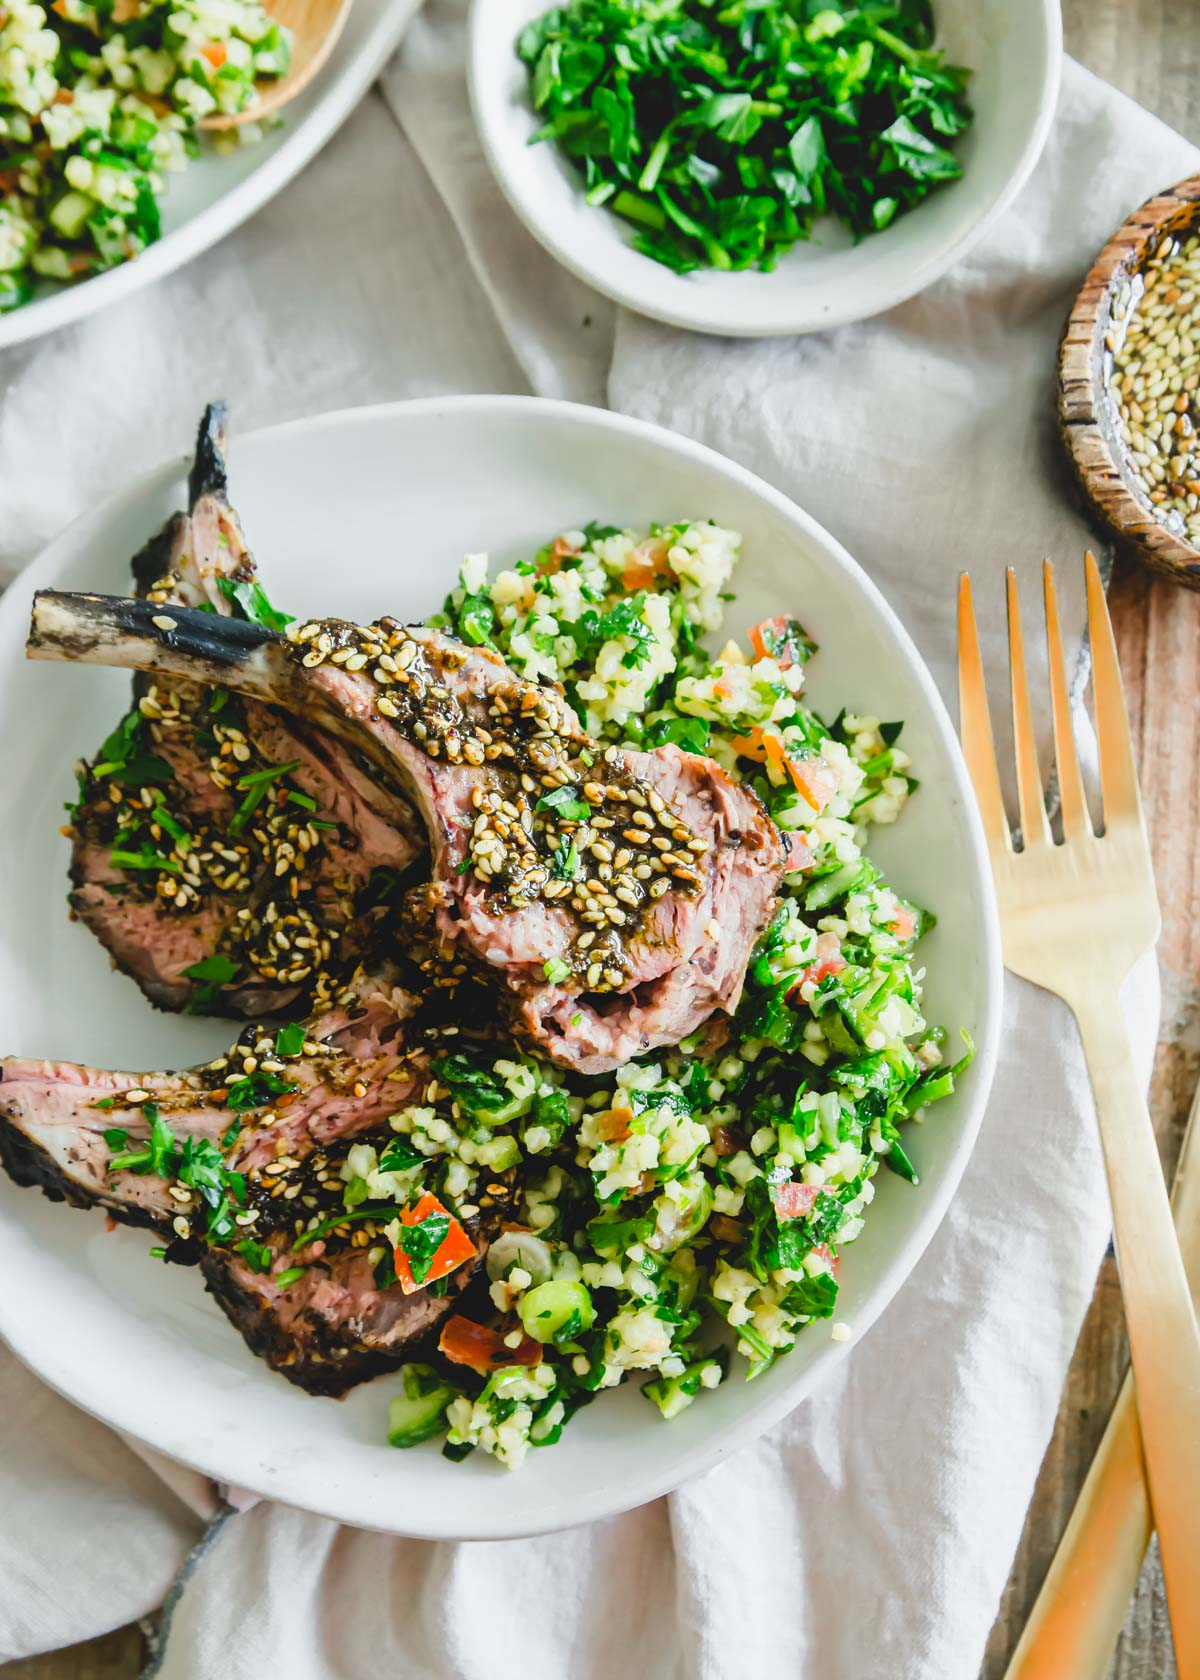 Za'atar seasoned grilled rack of lamb on a bed of gluten-free millet tabbouleh.